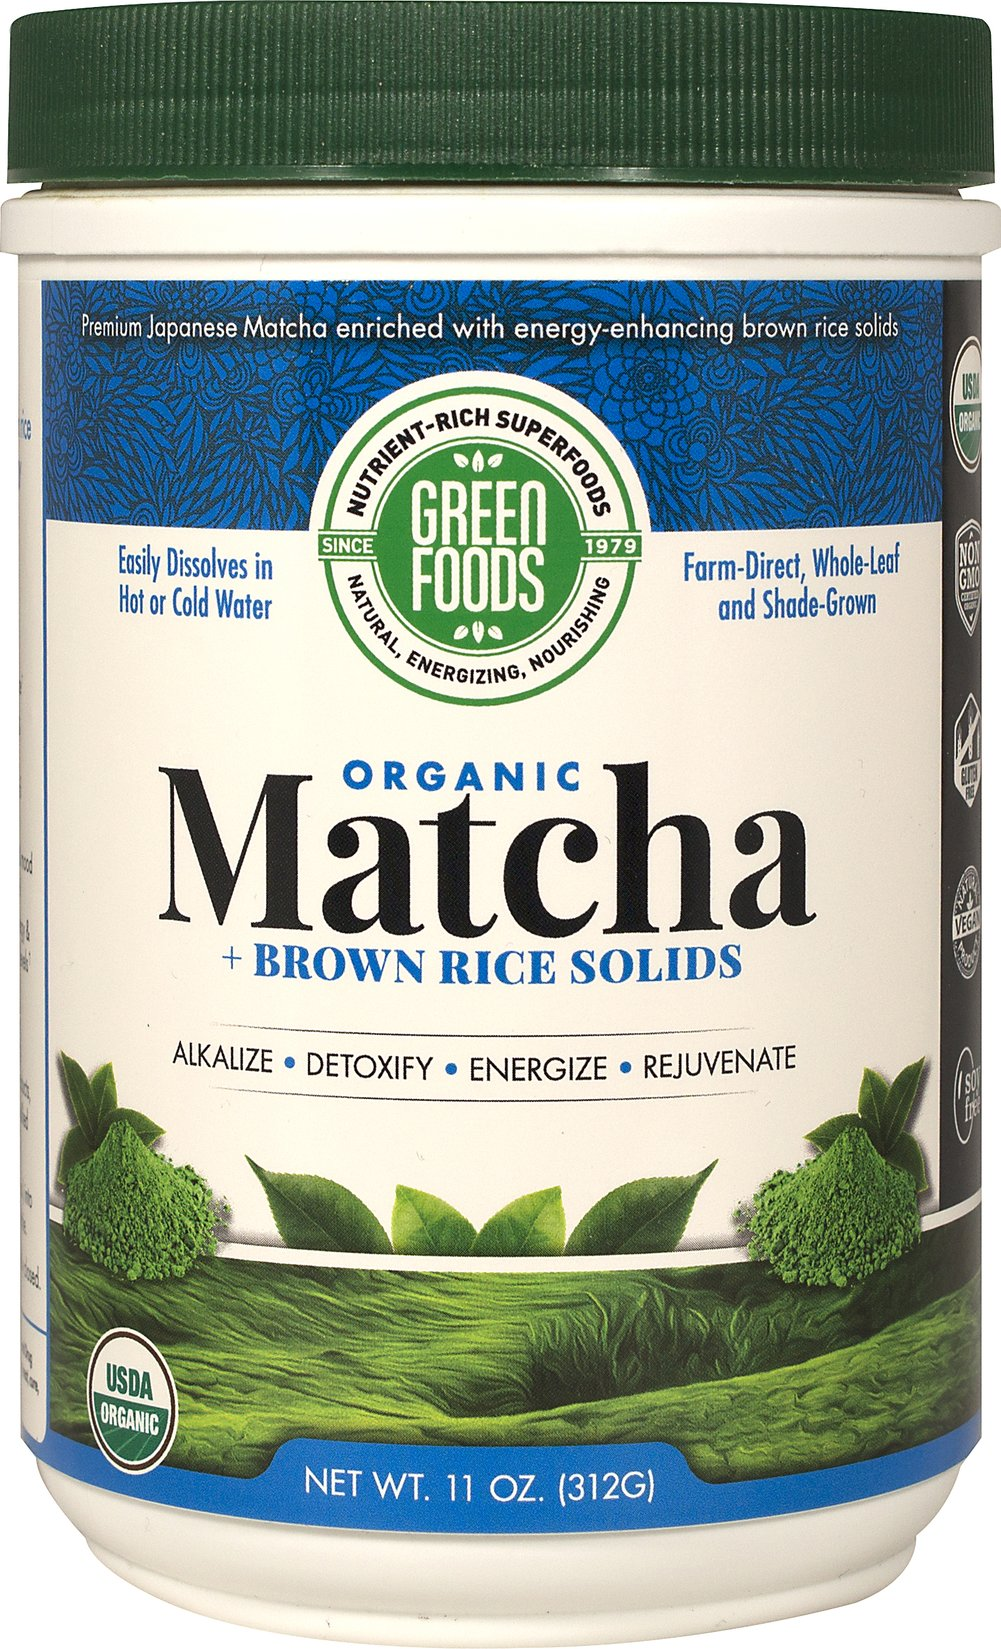 Organic Matcha + Brown Rice Solids